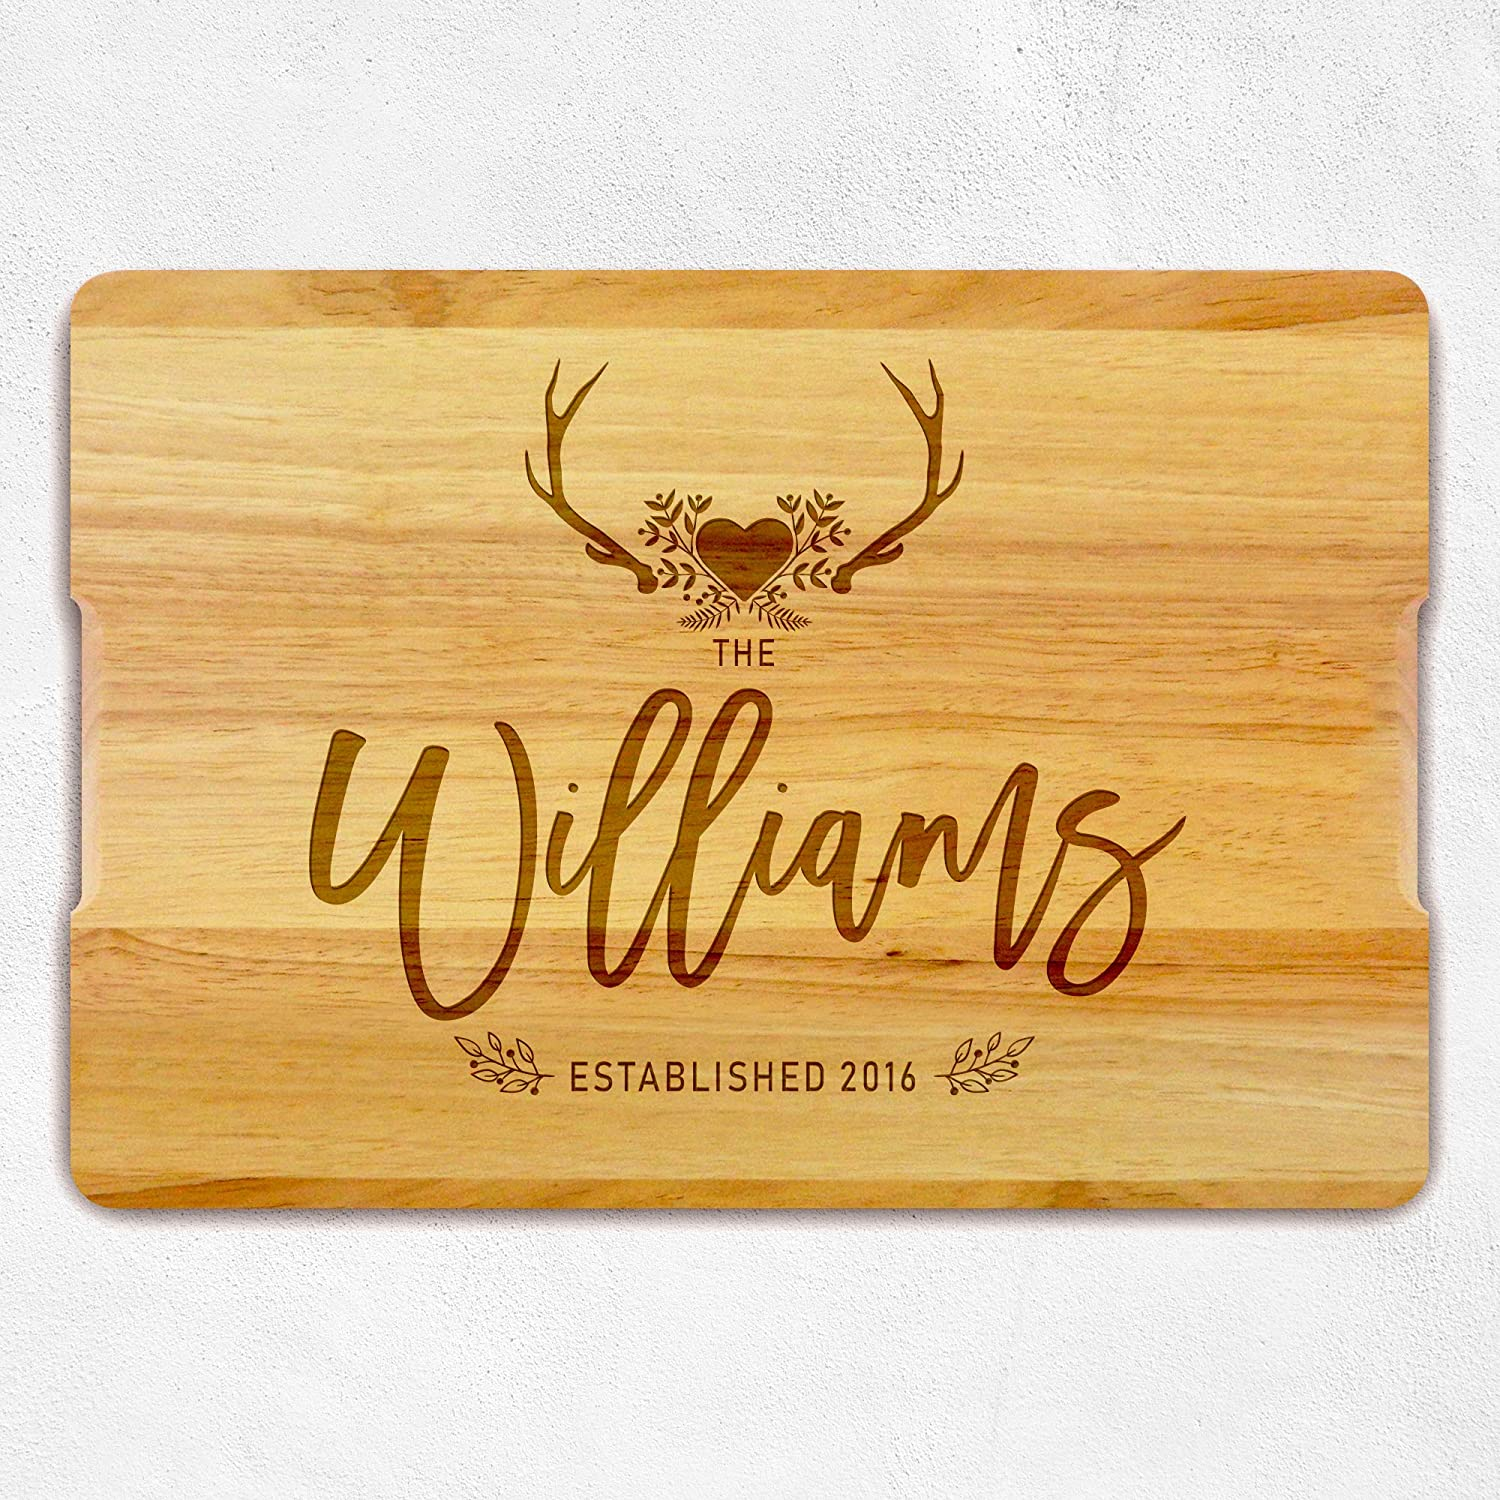 Personalized Chopping Board with Family Name, Housewarming Gift - Custom Wooden Cutting Board, Engraved Gift for Anniversary